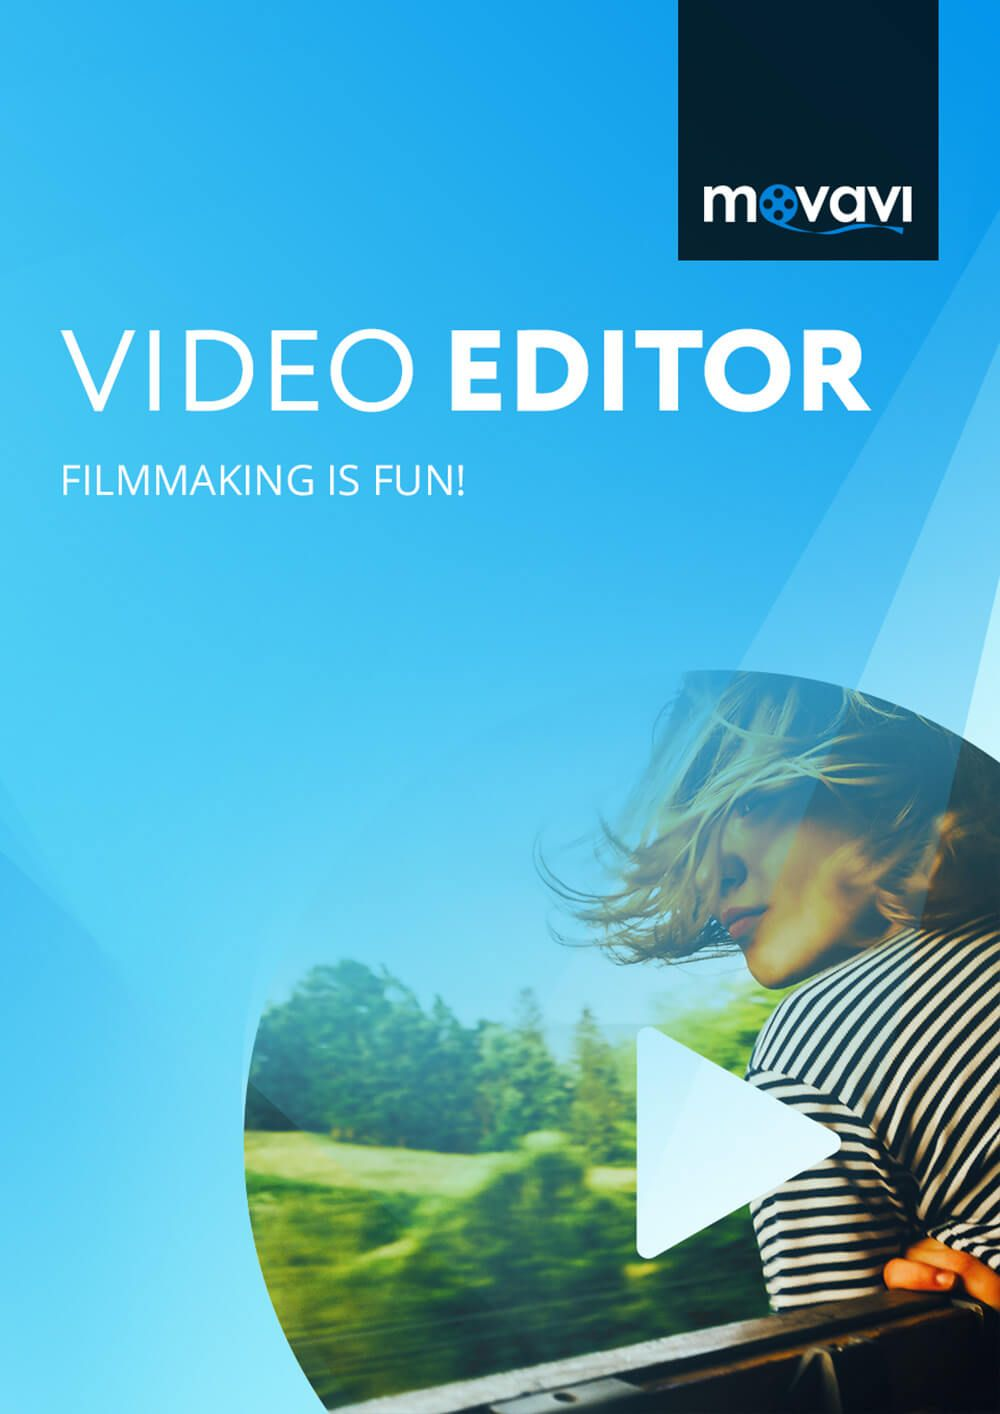 Pin On Movavi Video Editor